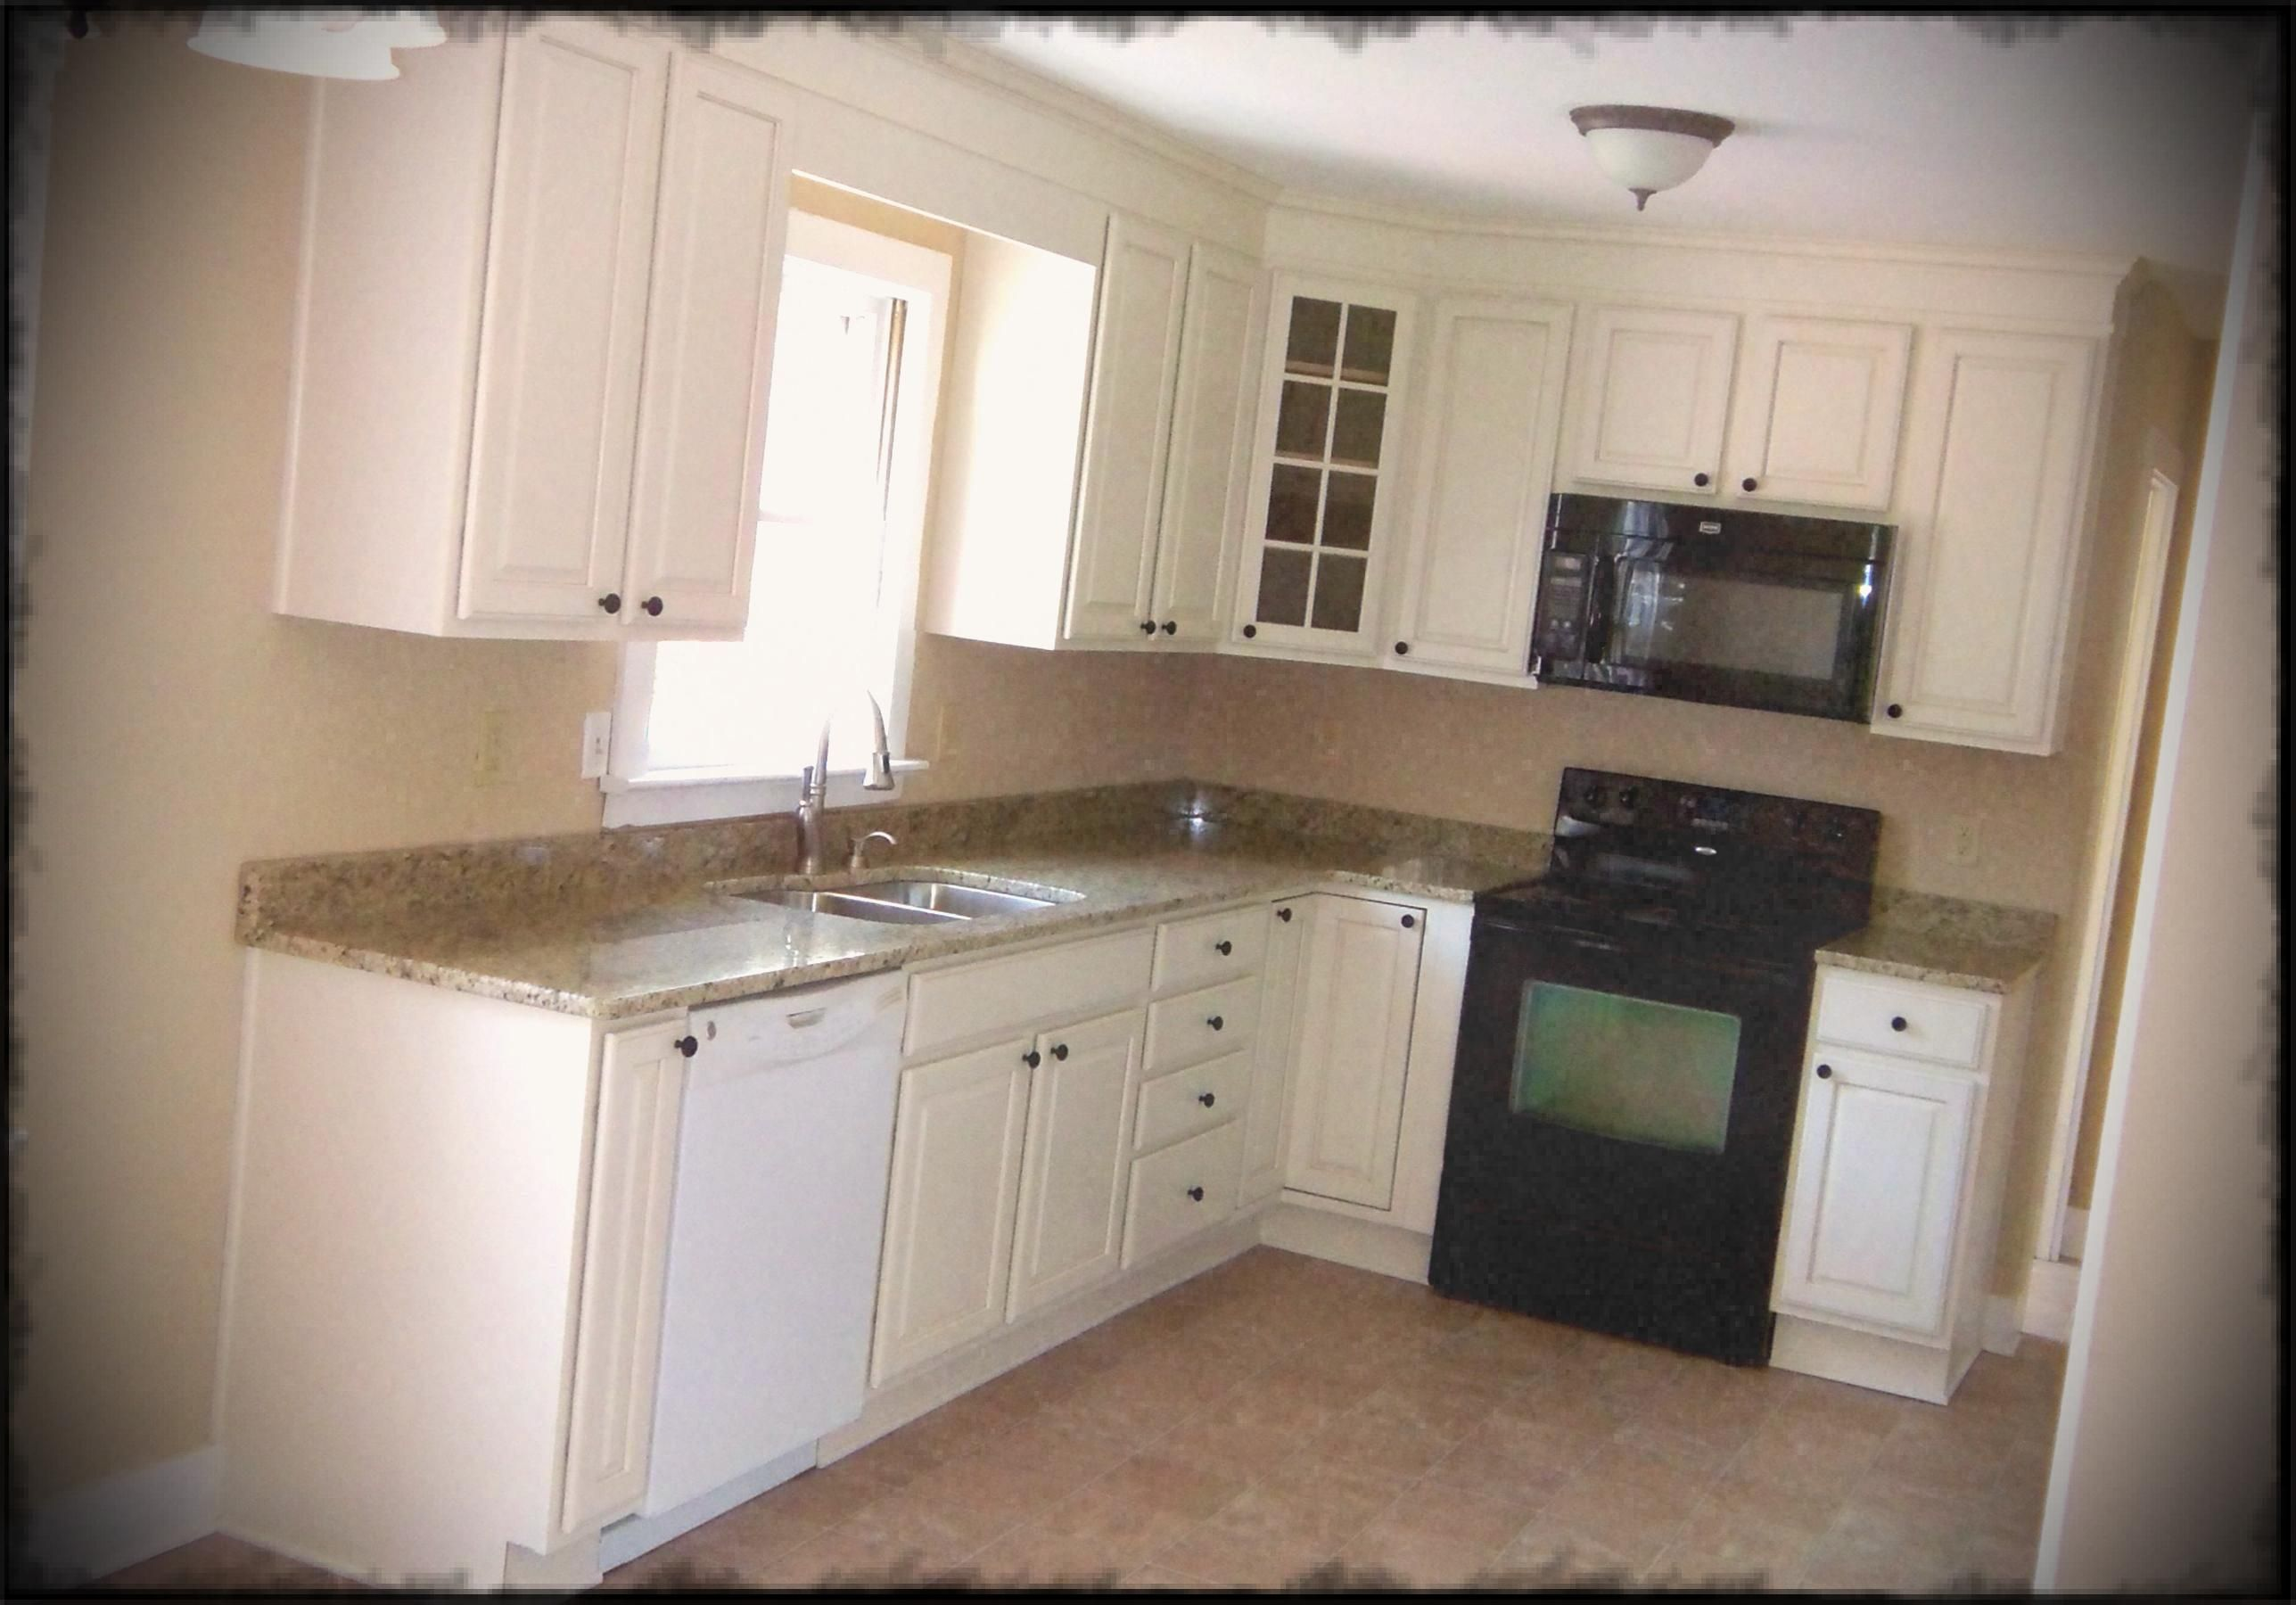 10x10 Small Kitchen Layout The House Decorating Kitchen Design Small L Shape Kitchen Layout Small Kitchen Design Layout